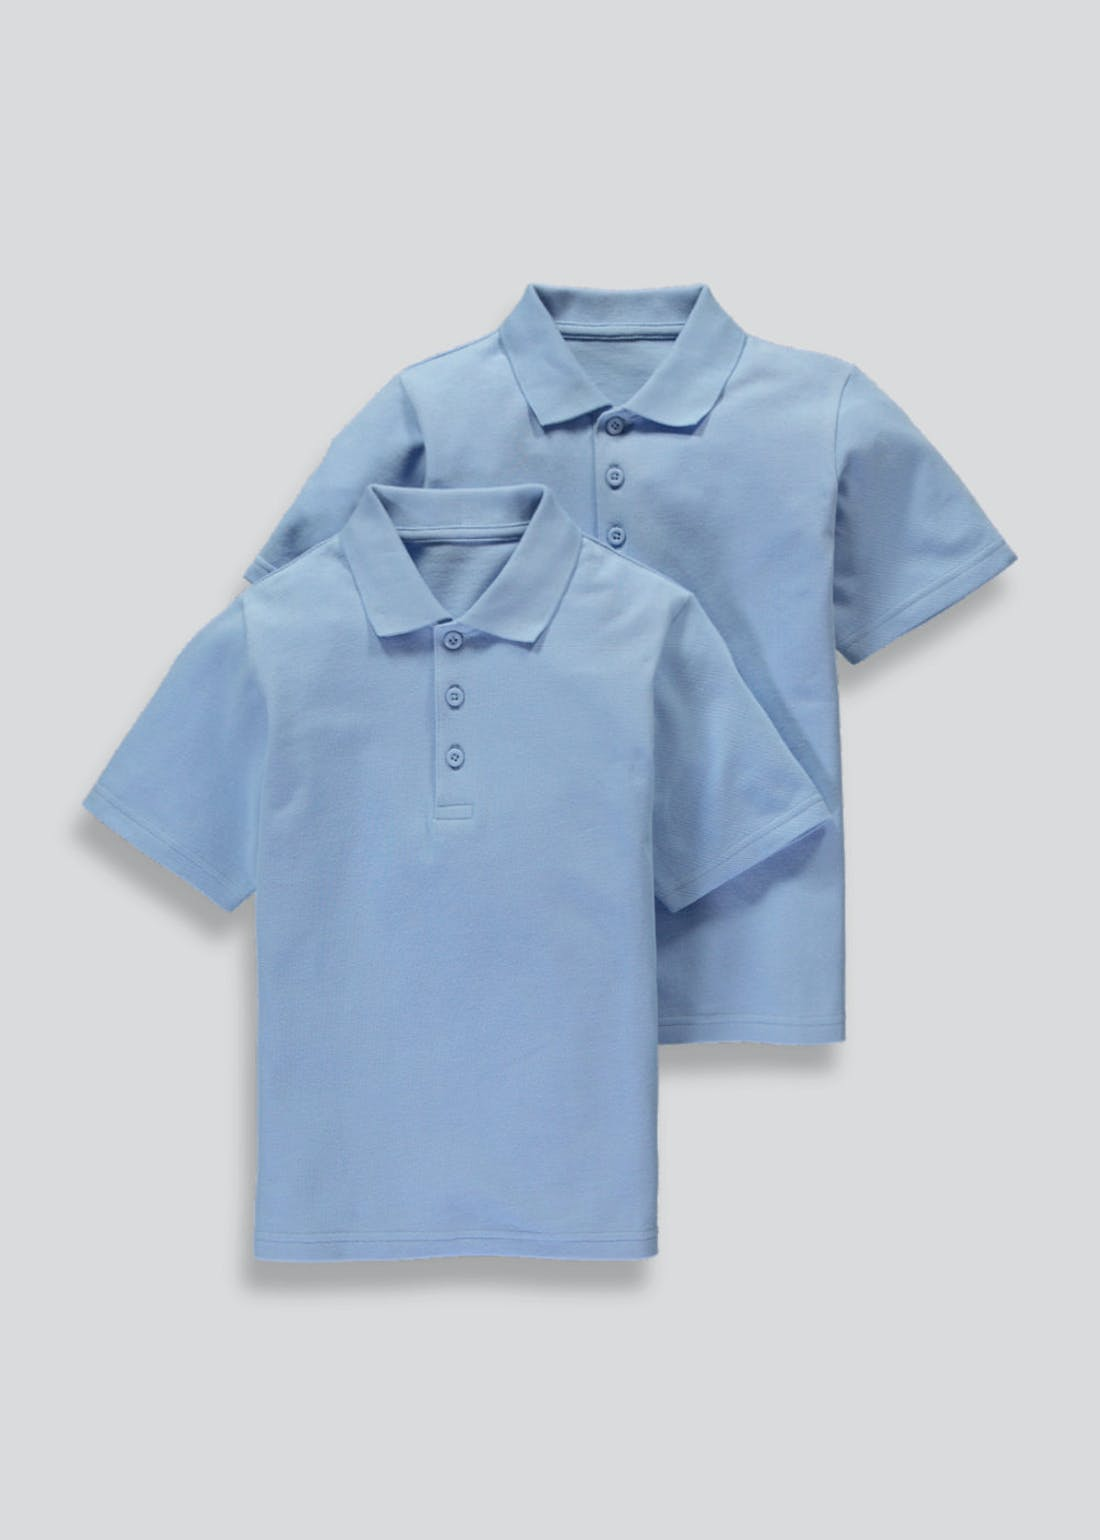 Kids 2 Pack Light Blue School Polo Shirts (3-16yrs)